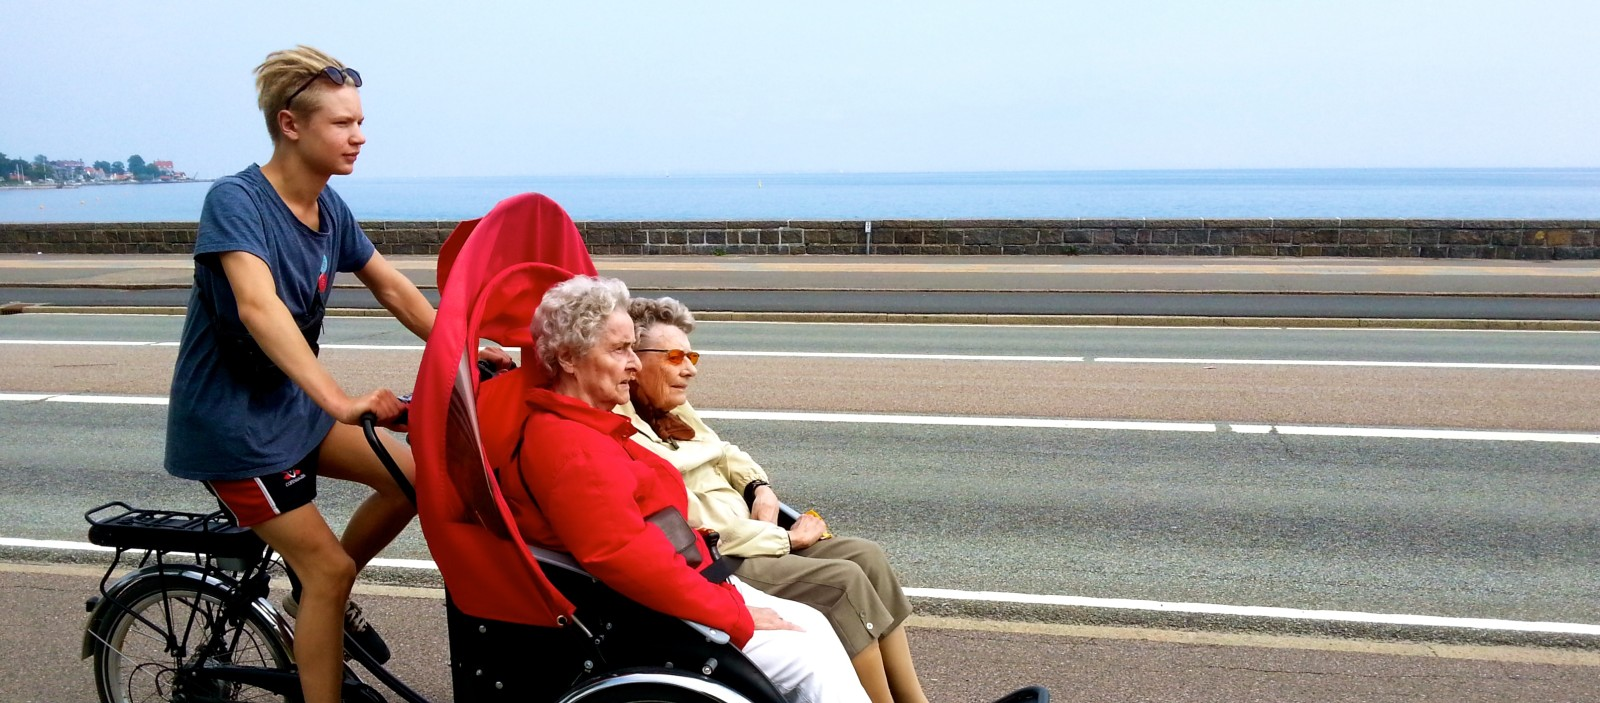 A young man uses a trishaw to show two women around town. Photo by Ole Kassow, courtesy of Cycling Without Age.